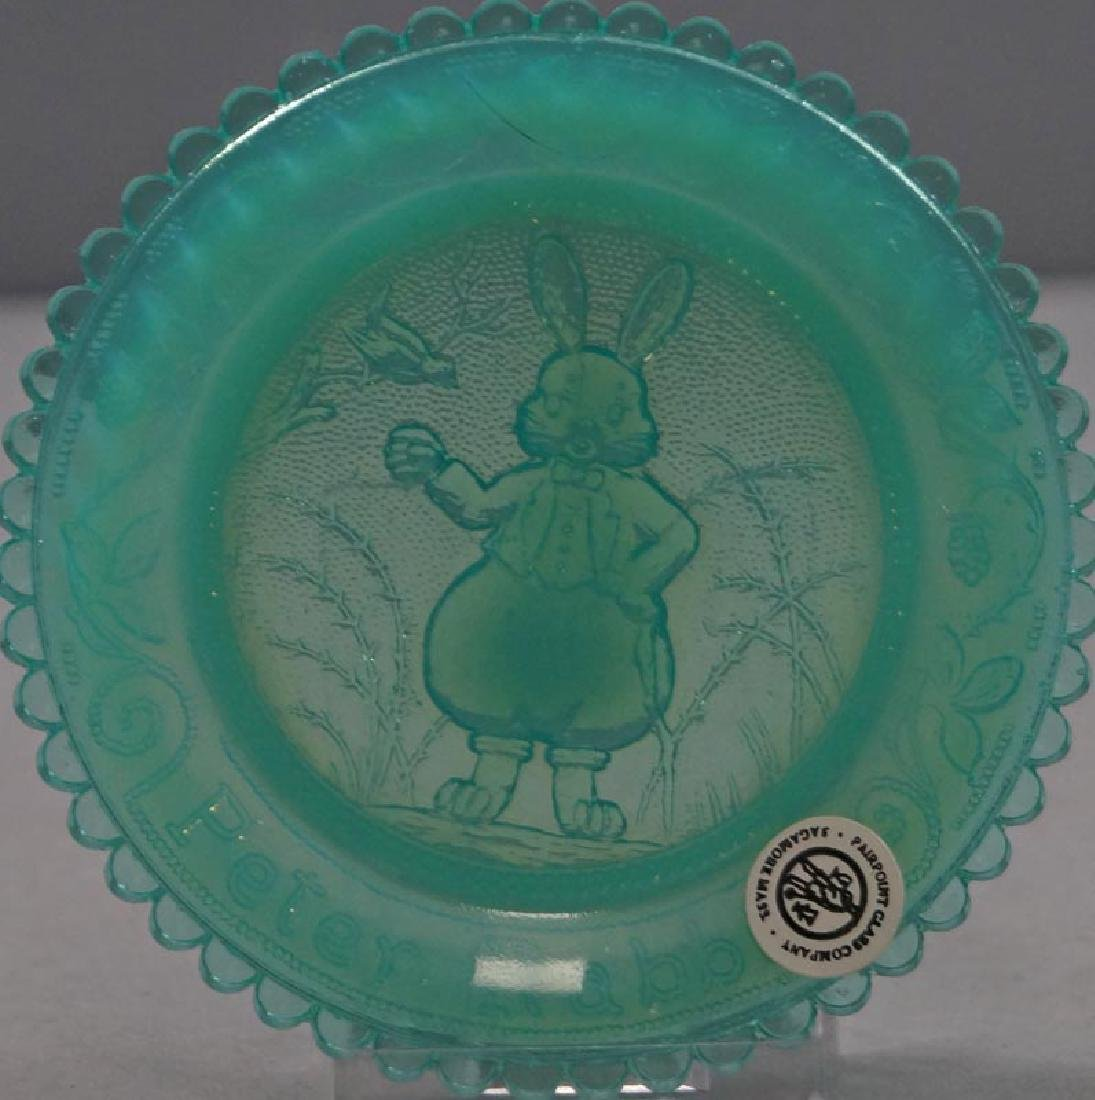 Peter Rabbit Pairpoint Cup Plate - 2